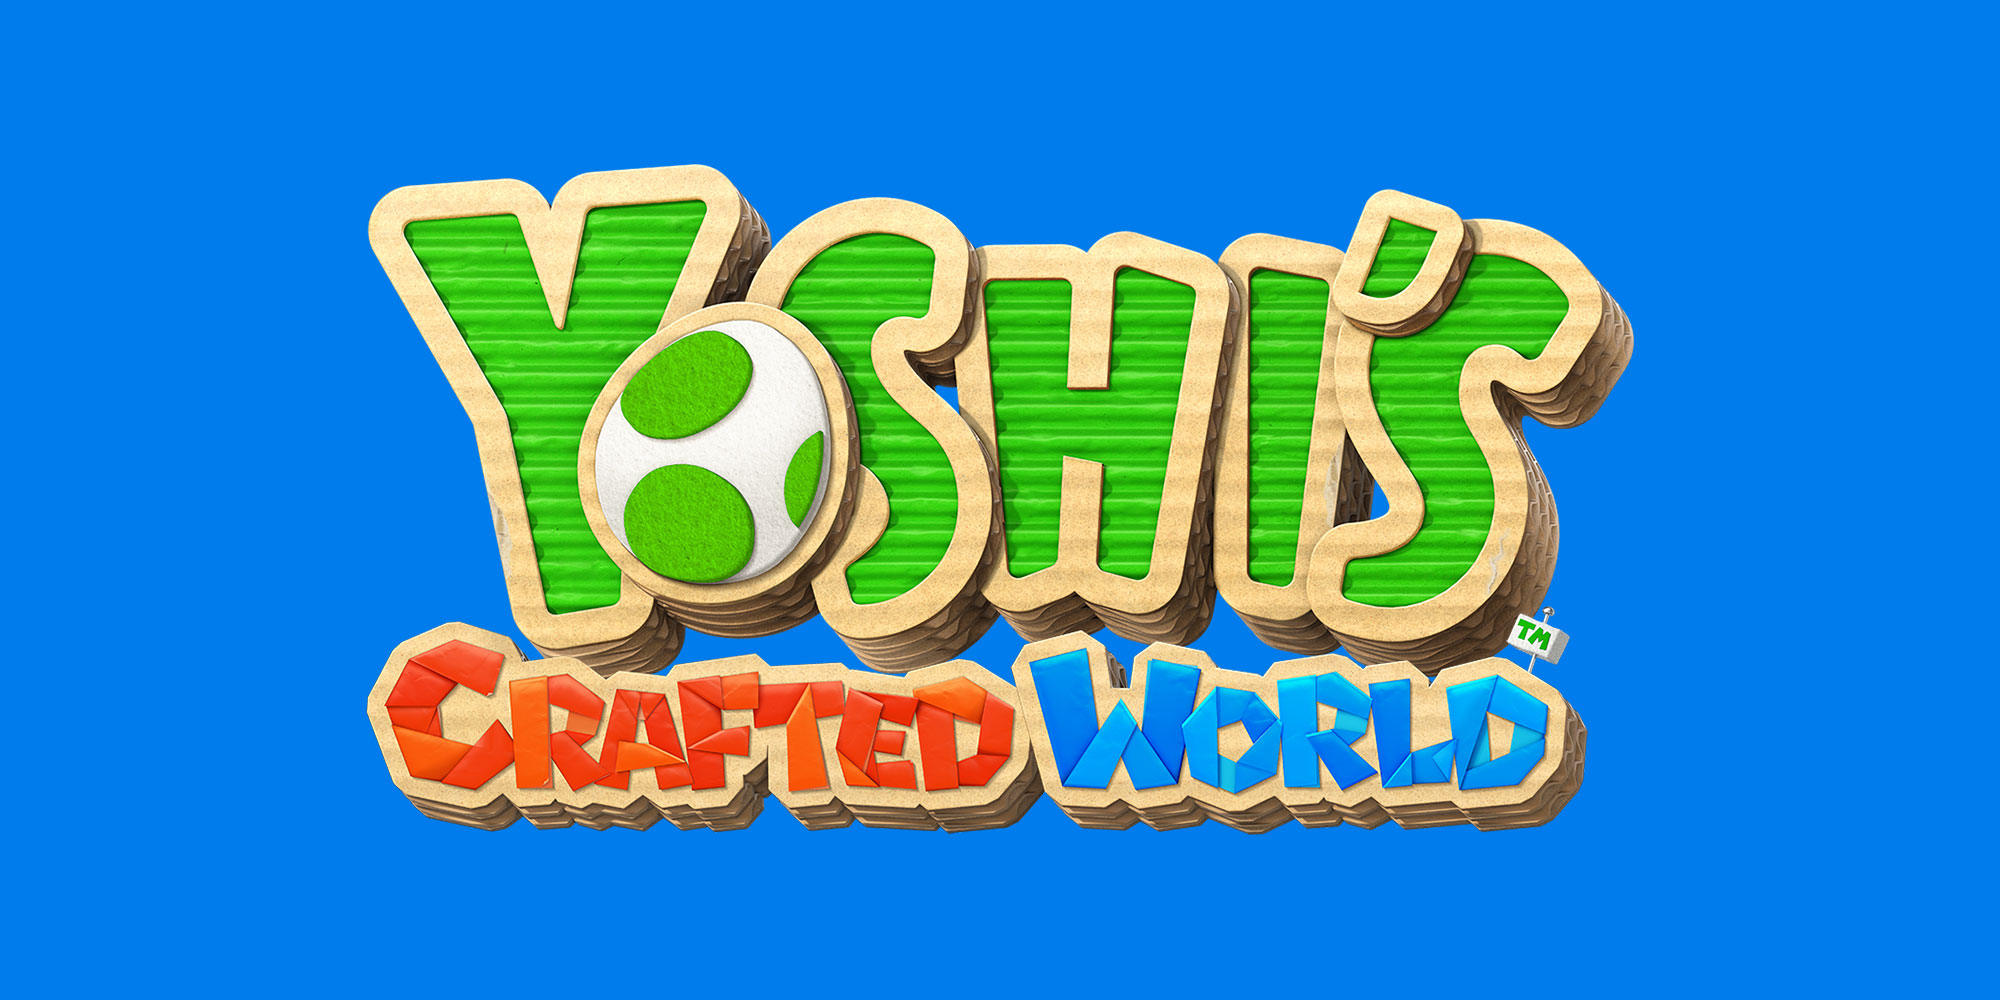 Yoshi for Nintendo Switch (working title)